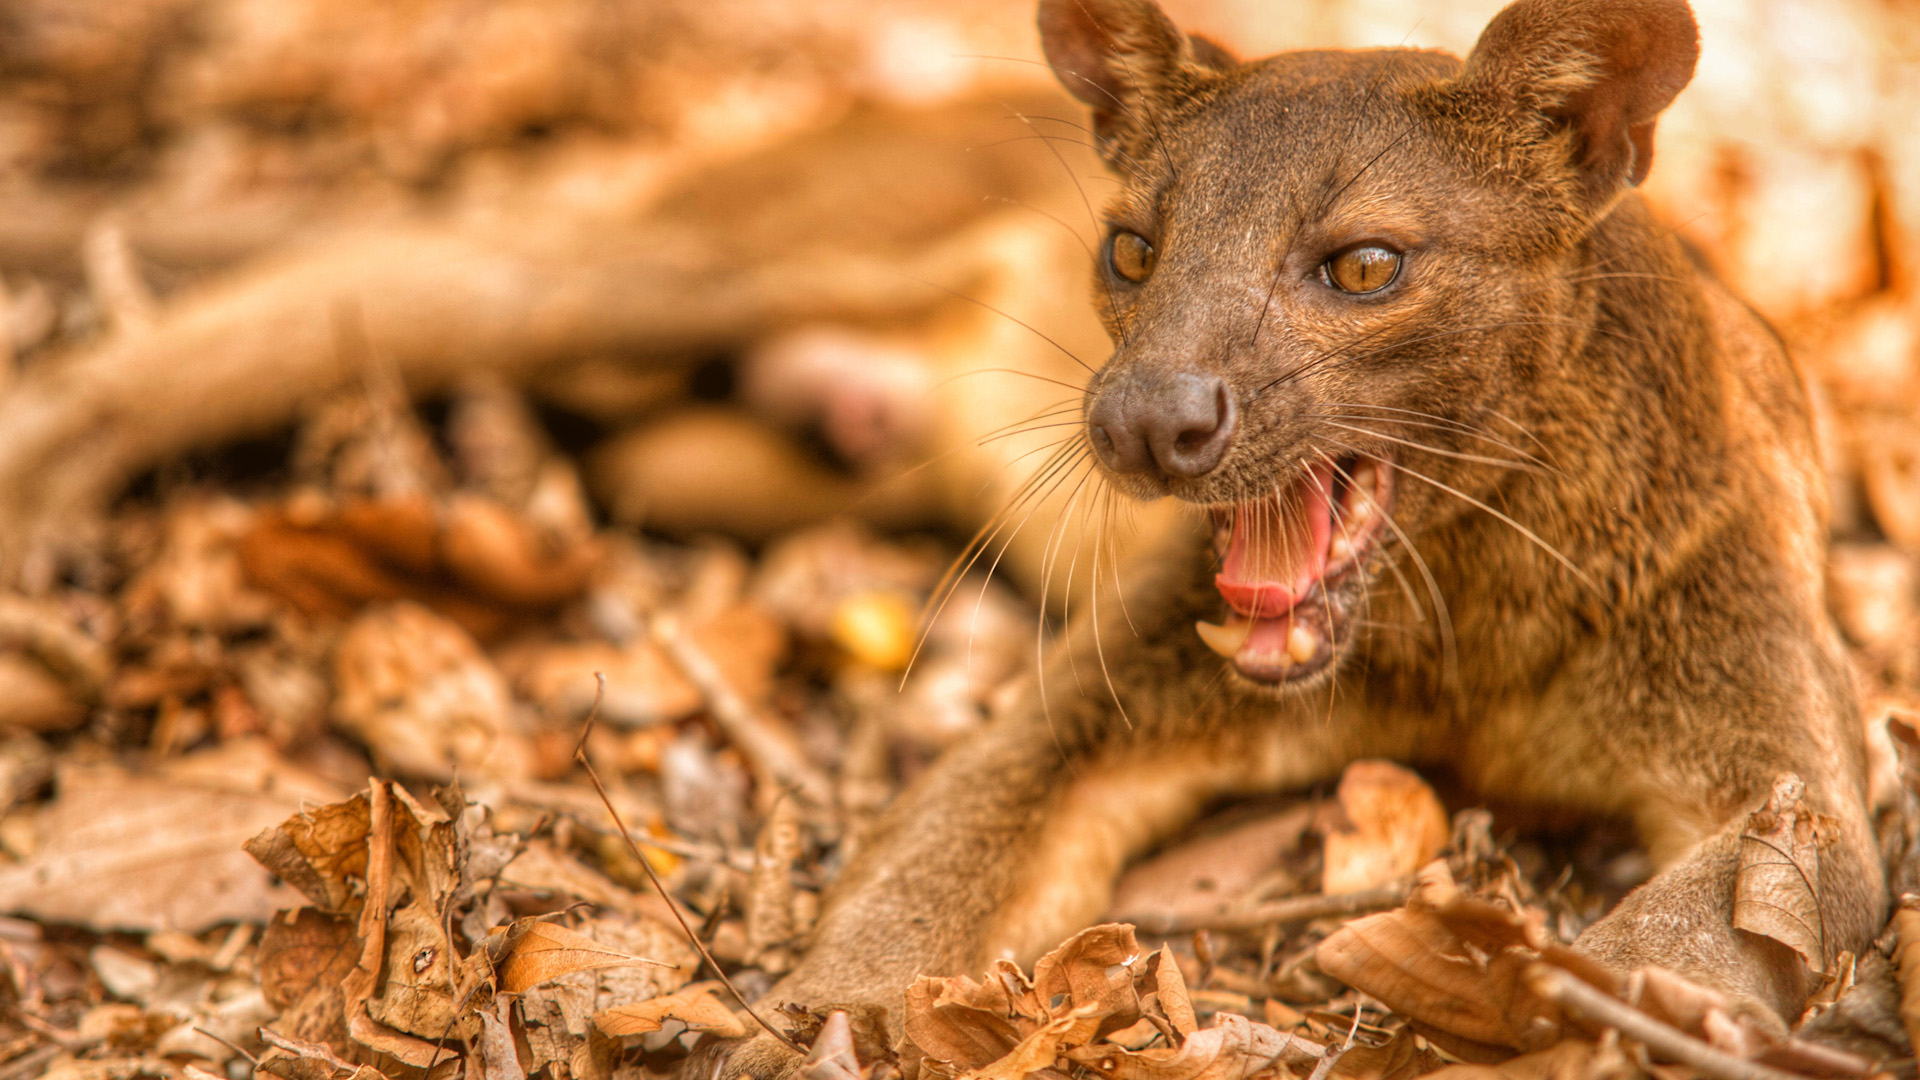 Fossa in Madagascar by Russ MacLaughlin